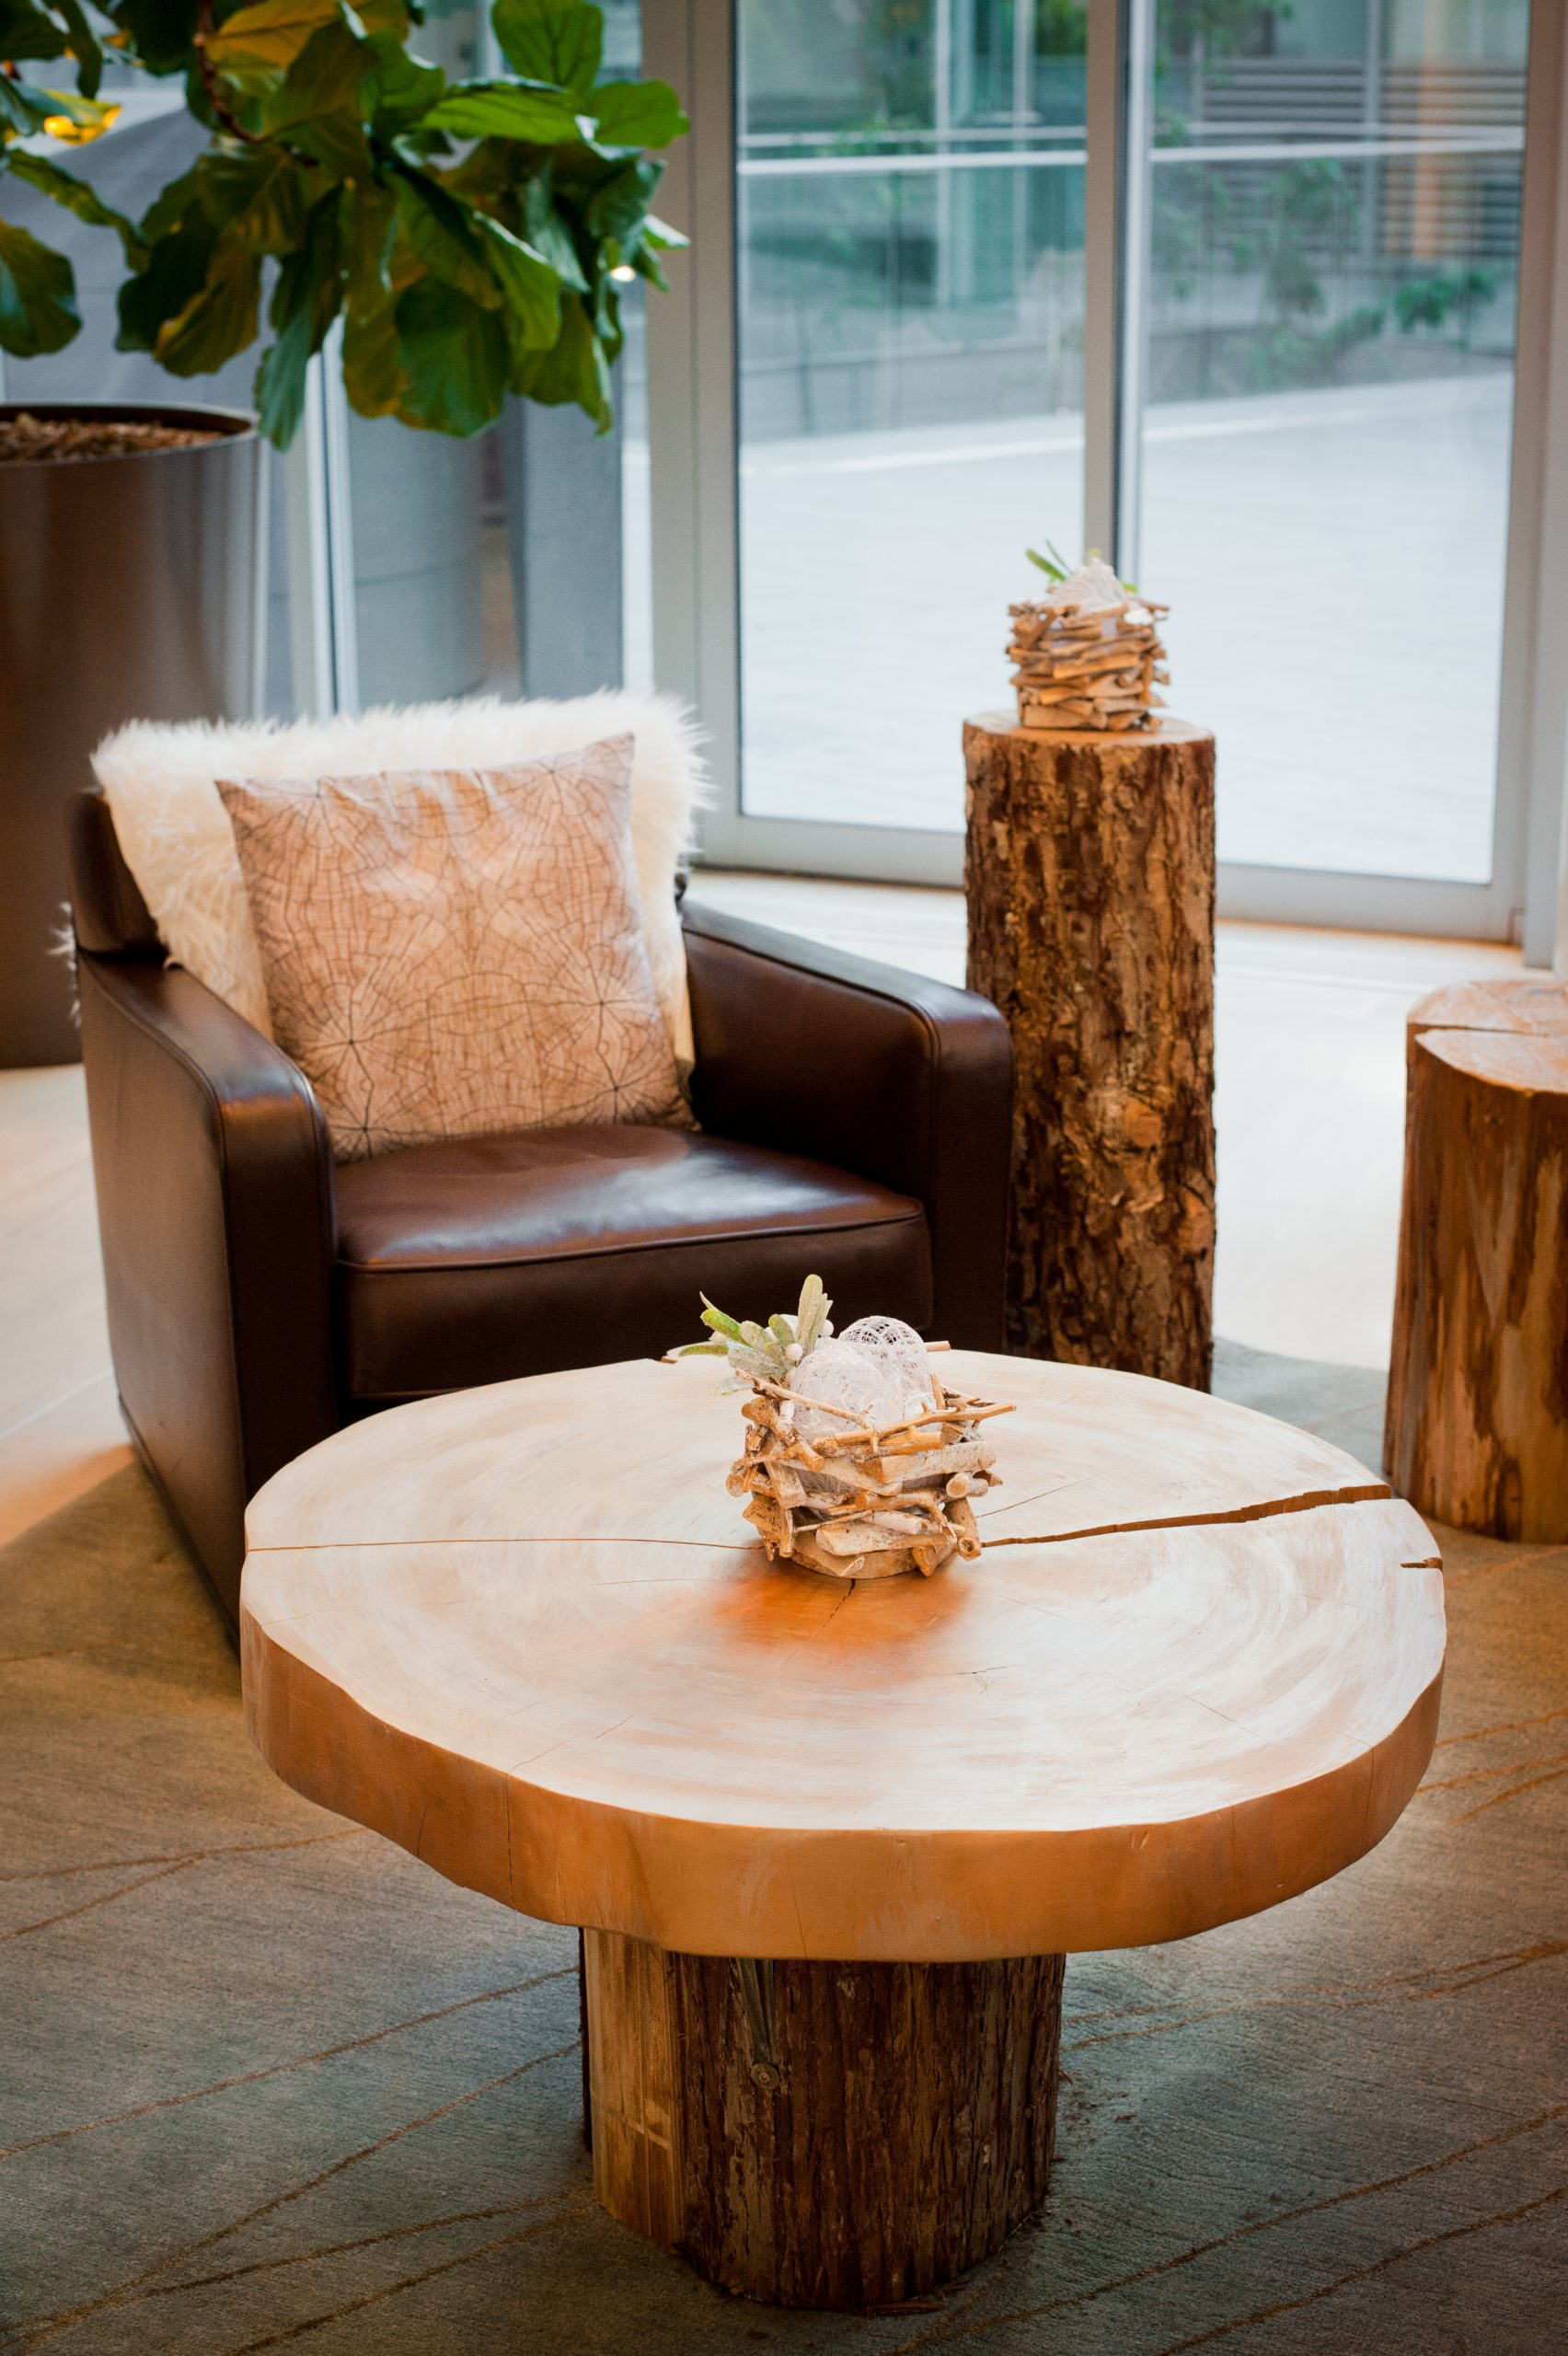 Hotel lobby accent decor with wood cookie and tree stump table, gilded woodland arrangement and west coast accents